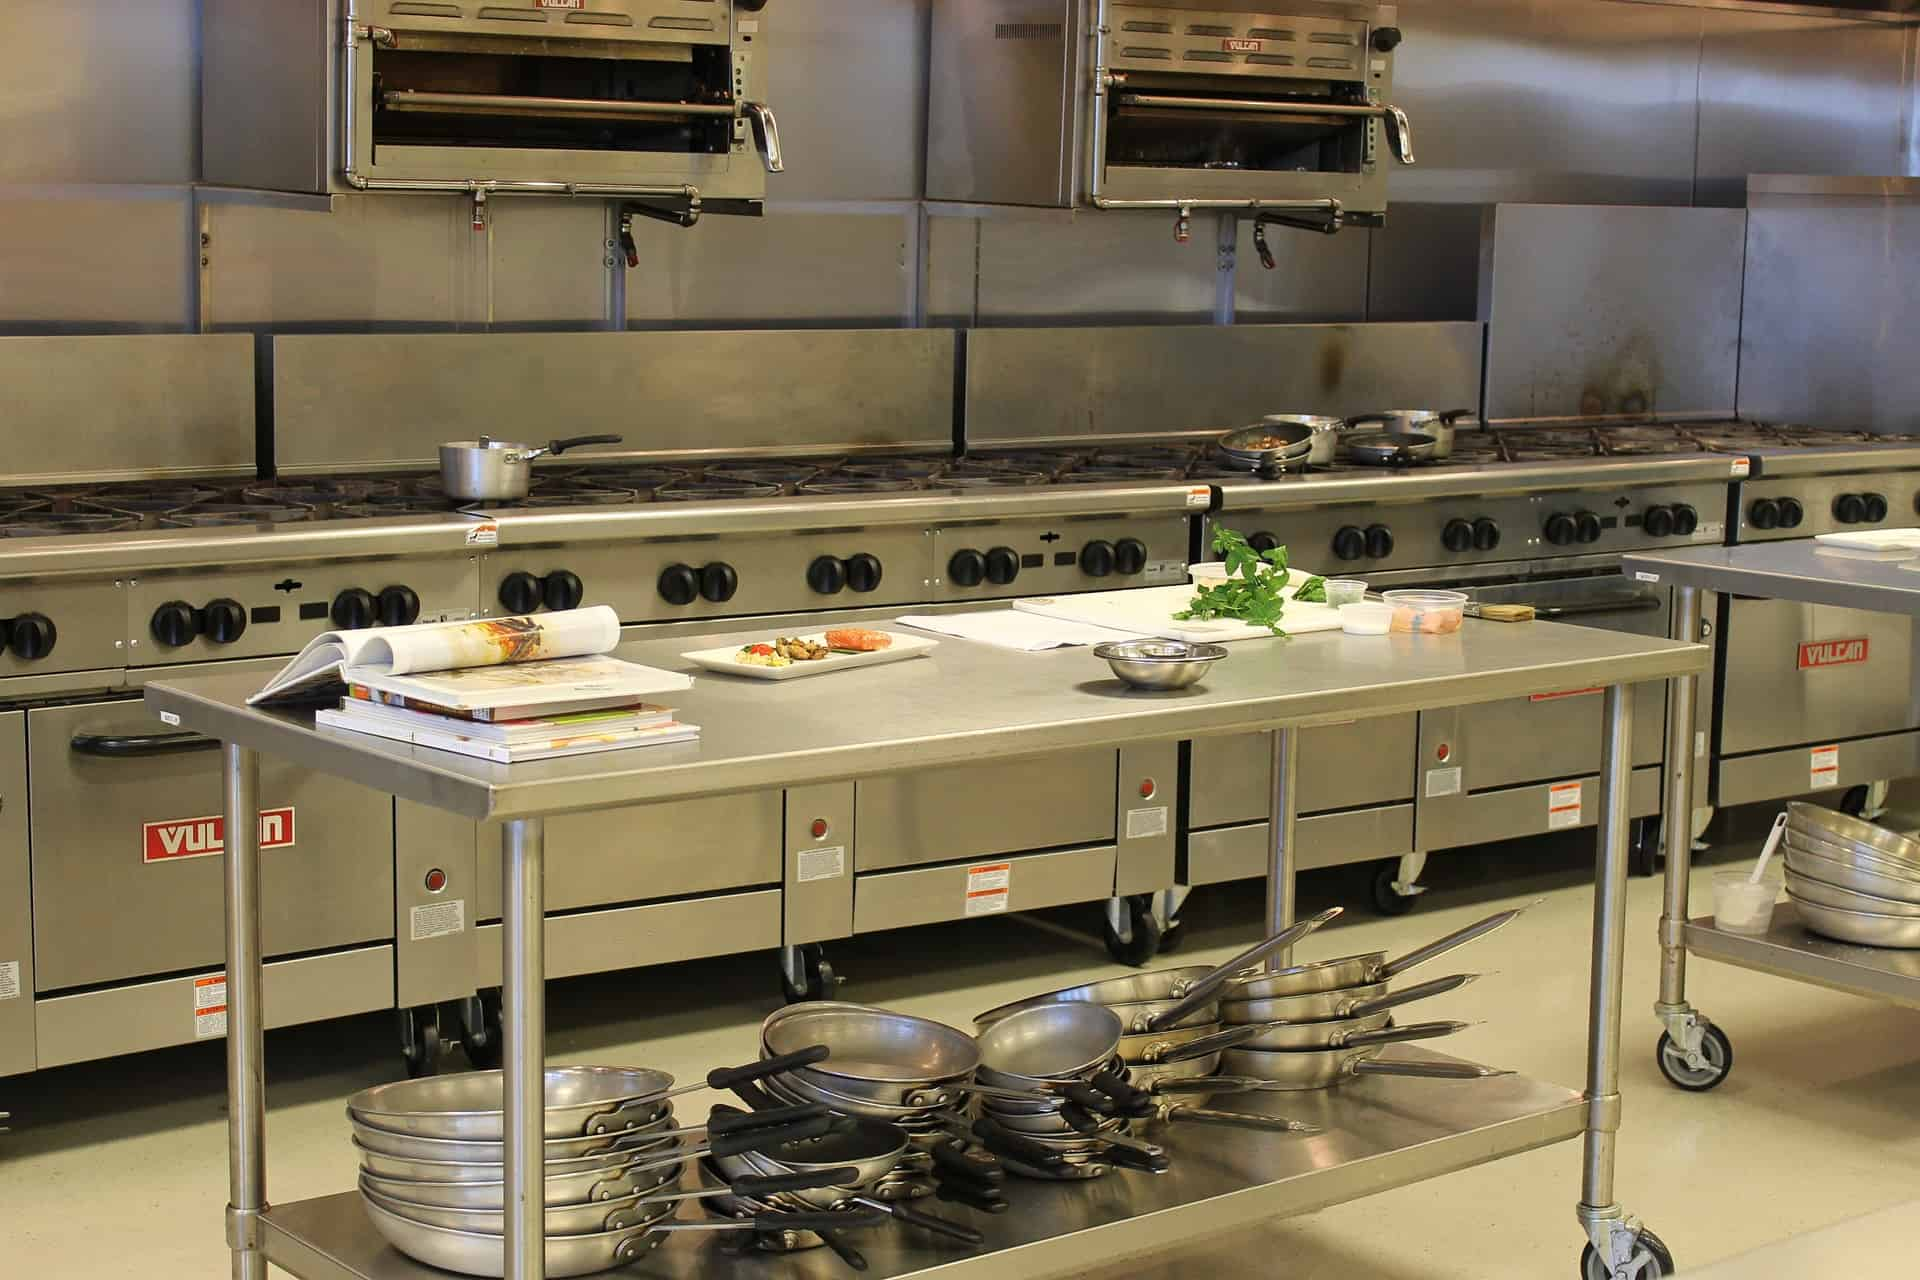 Fire Suppression Essentials for Restaurant and Commercial Kitchens